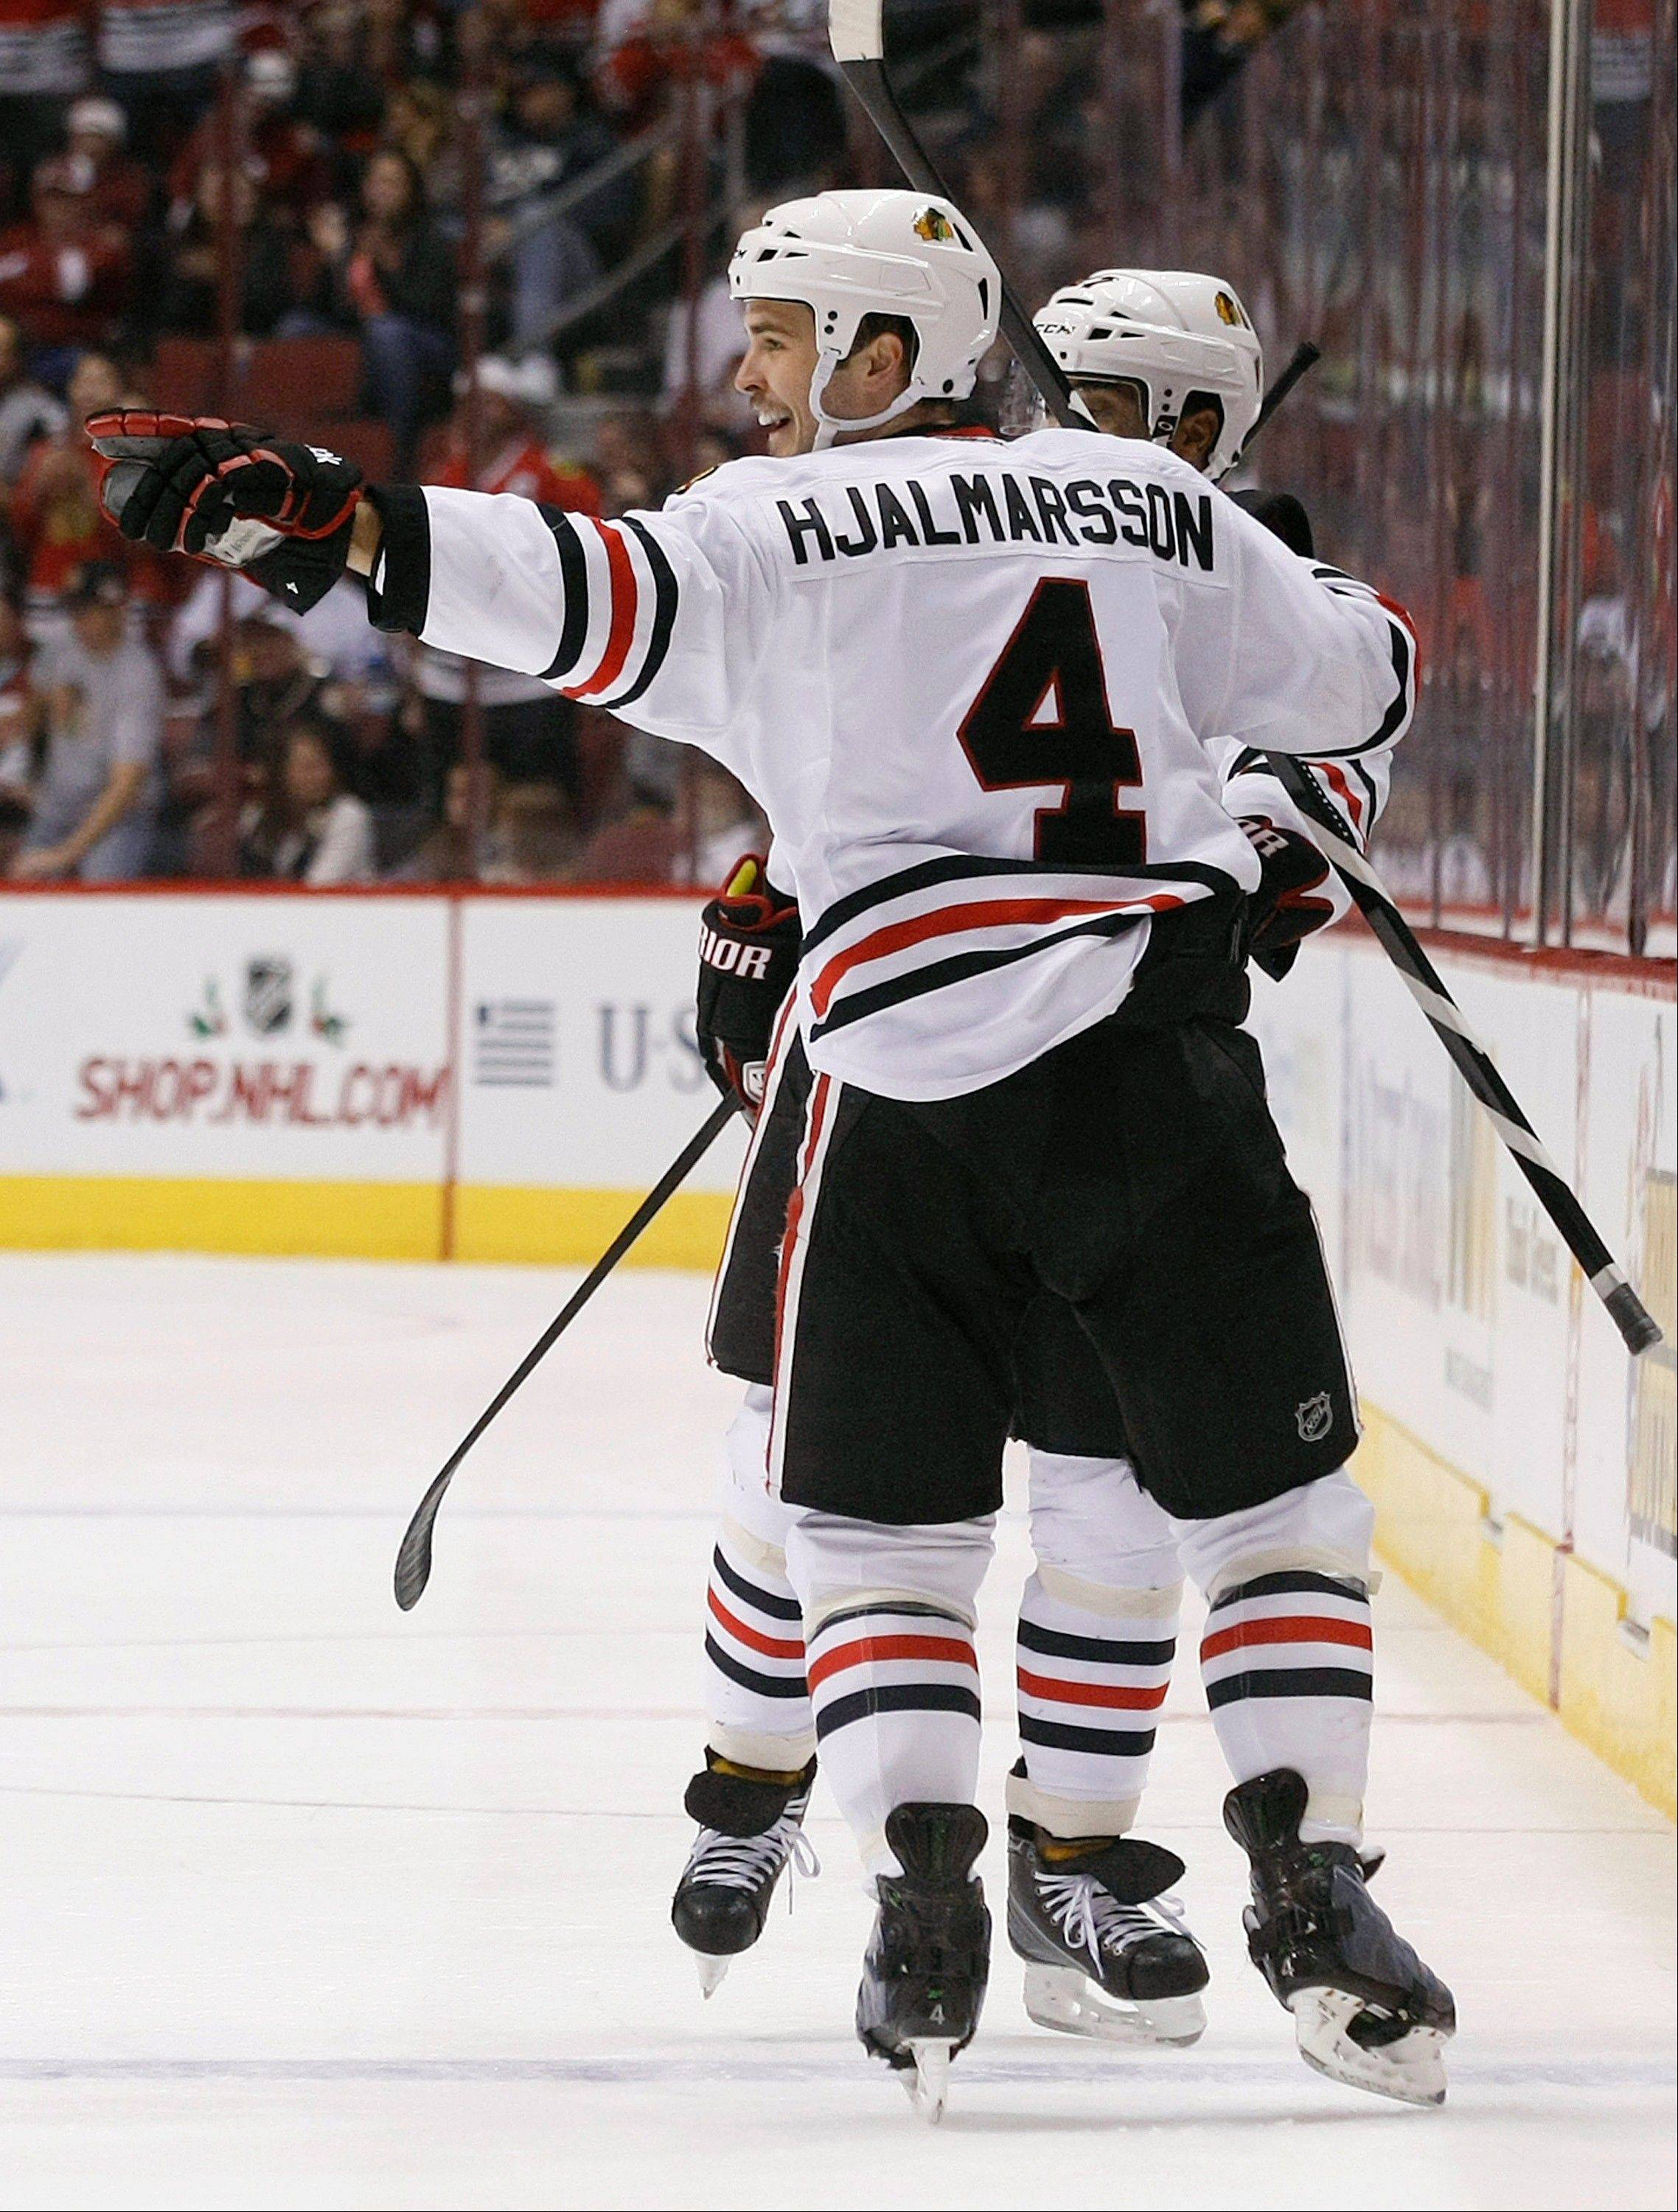 Chicago Blackhawks defenseman Niklas Hjalmarsson (4) celebrates after scoring a first period during an NHL hockey game against the Phoenix Coyotes on Saturday, Nov. 30, 2013, in Glendale, Ariz.